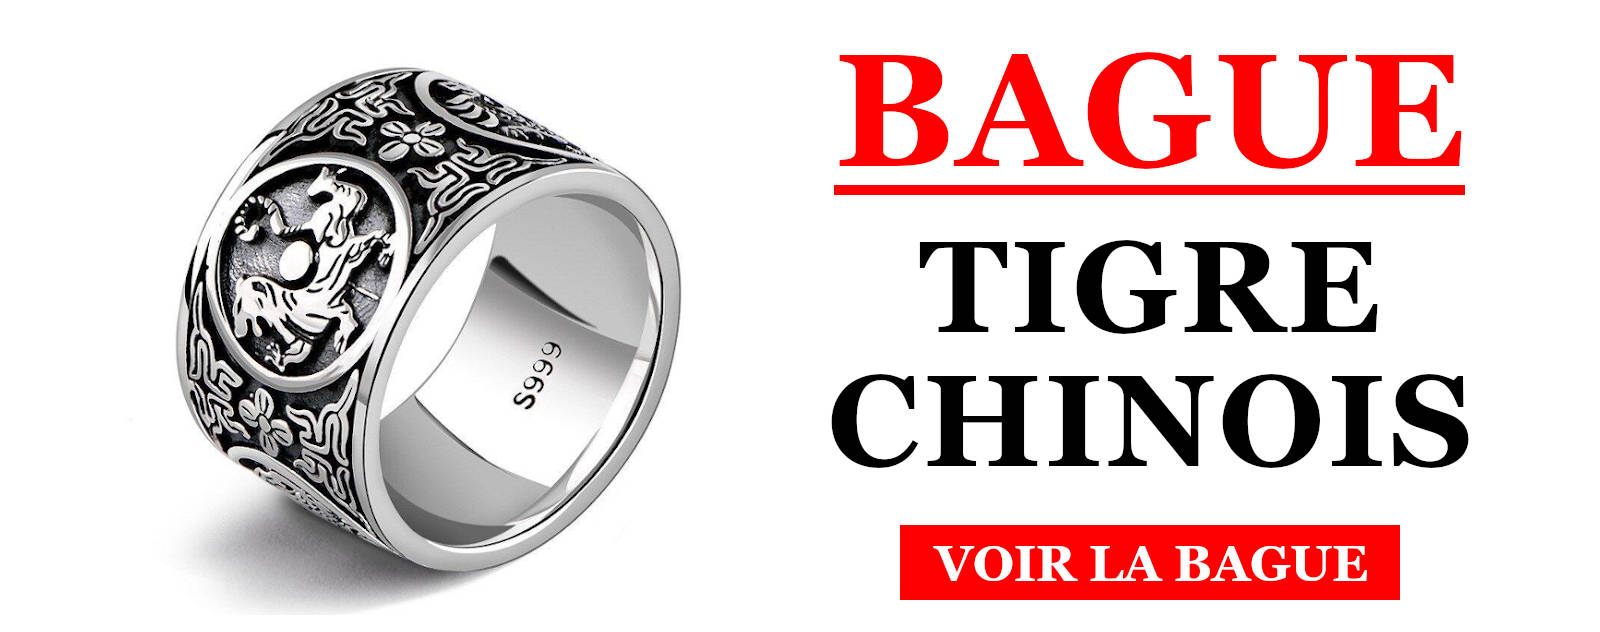 Bague Tigre Chinois